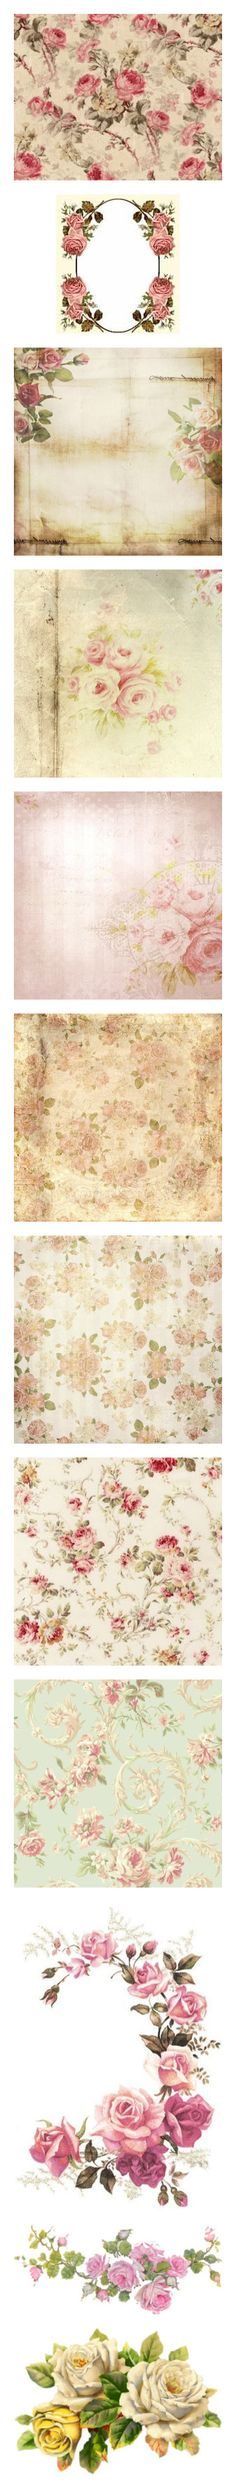 """""""Romantic Embellishments ~"""" by milluskah ❤ liked on Polyvore featuring romantic, items, fillers, embellishments, backgrounds, wallpaper, images, floral, filler and frames"""